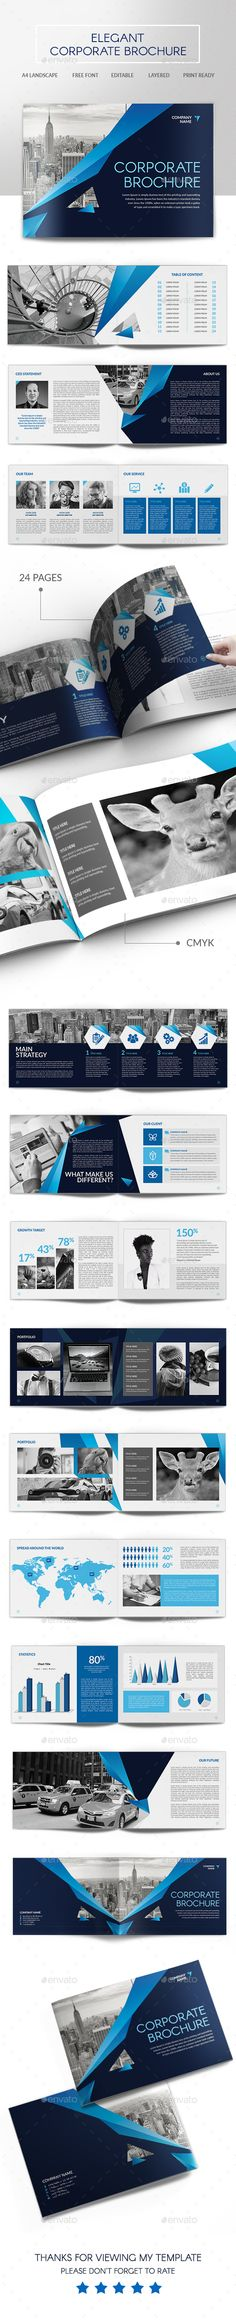 Elegant Corporate Brochure Template #design Download: http://graphicriver.net/item/elegant-corporate-brochure/14333524?ref=ksioks